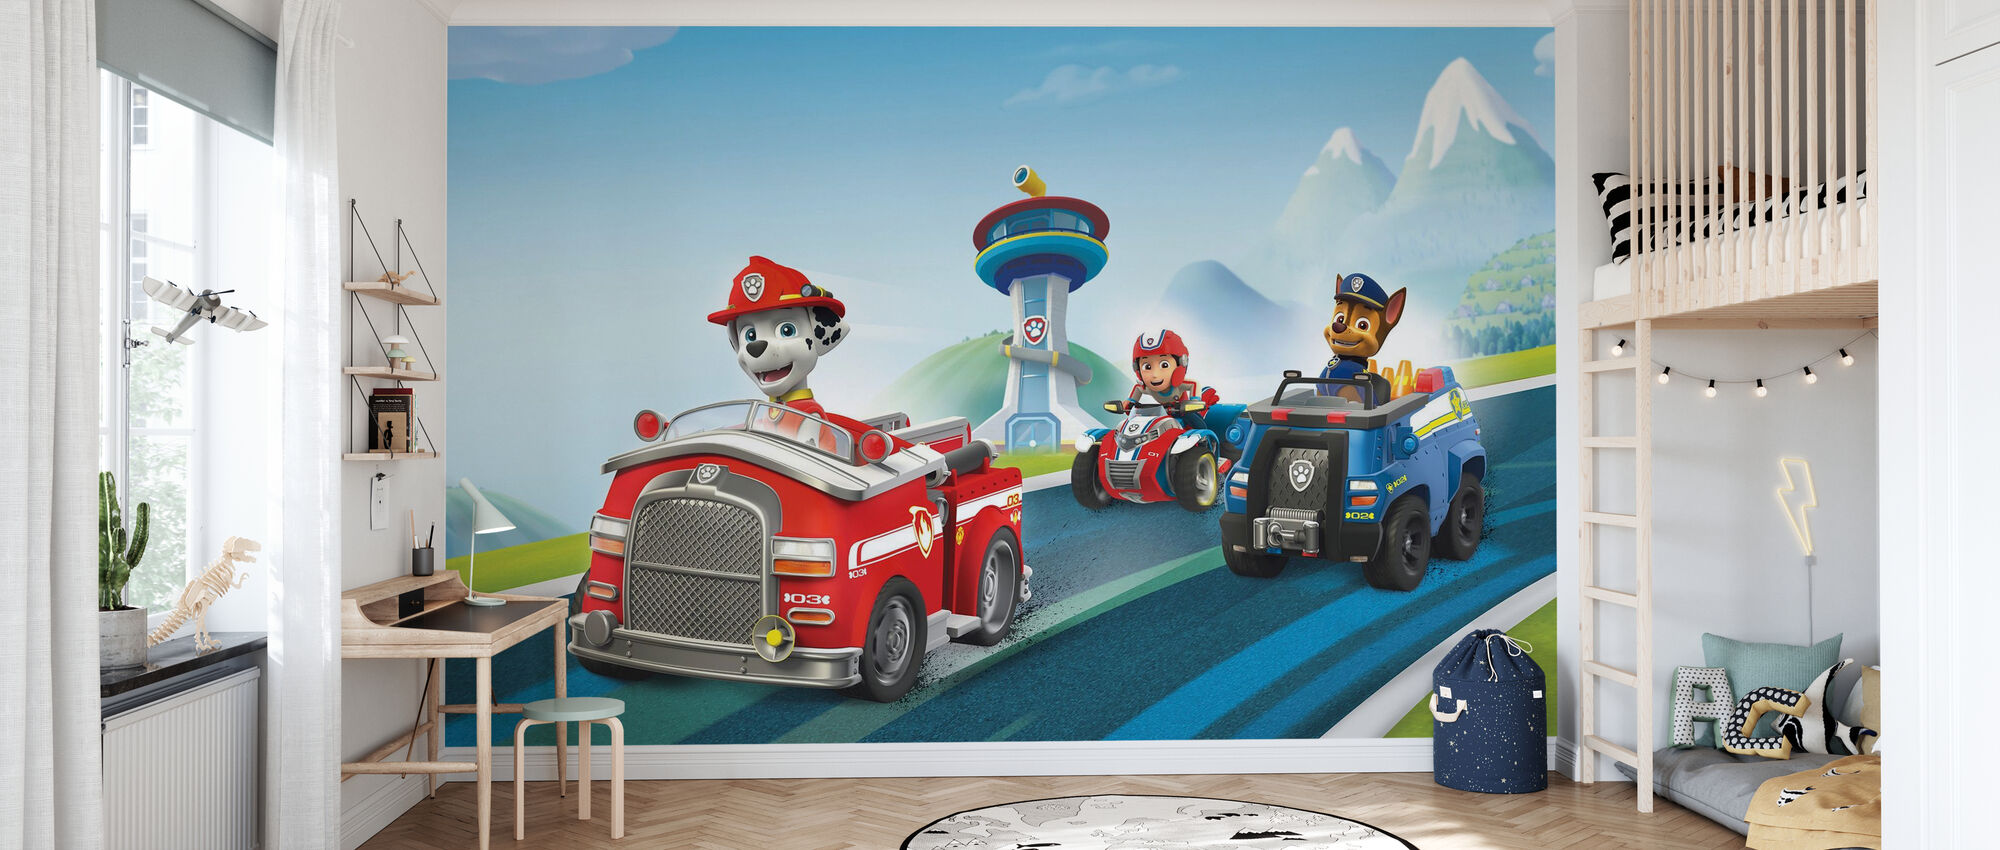 PAW Patrol - Ready for Action - Wallpaper - Kids Room